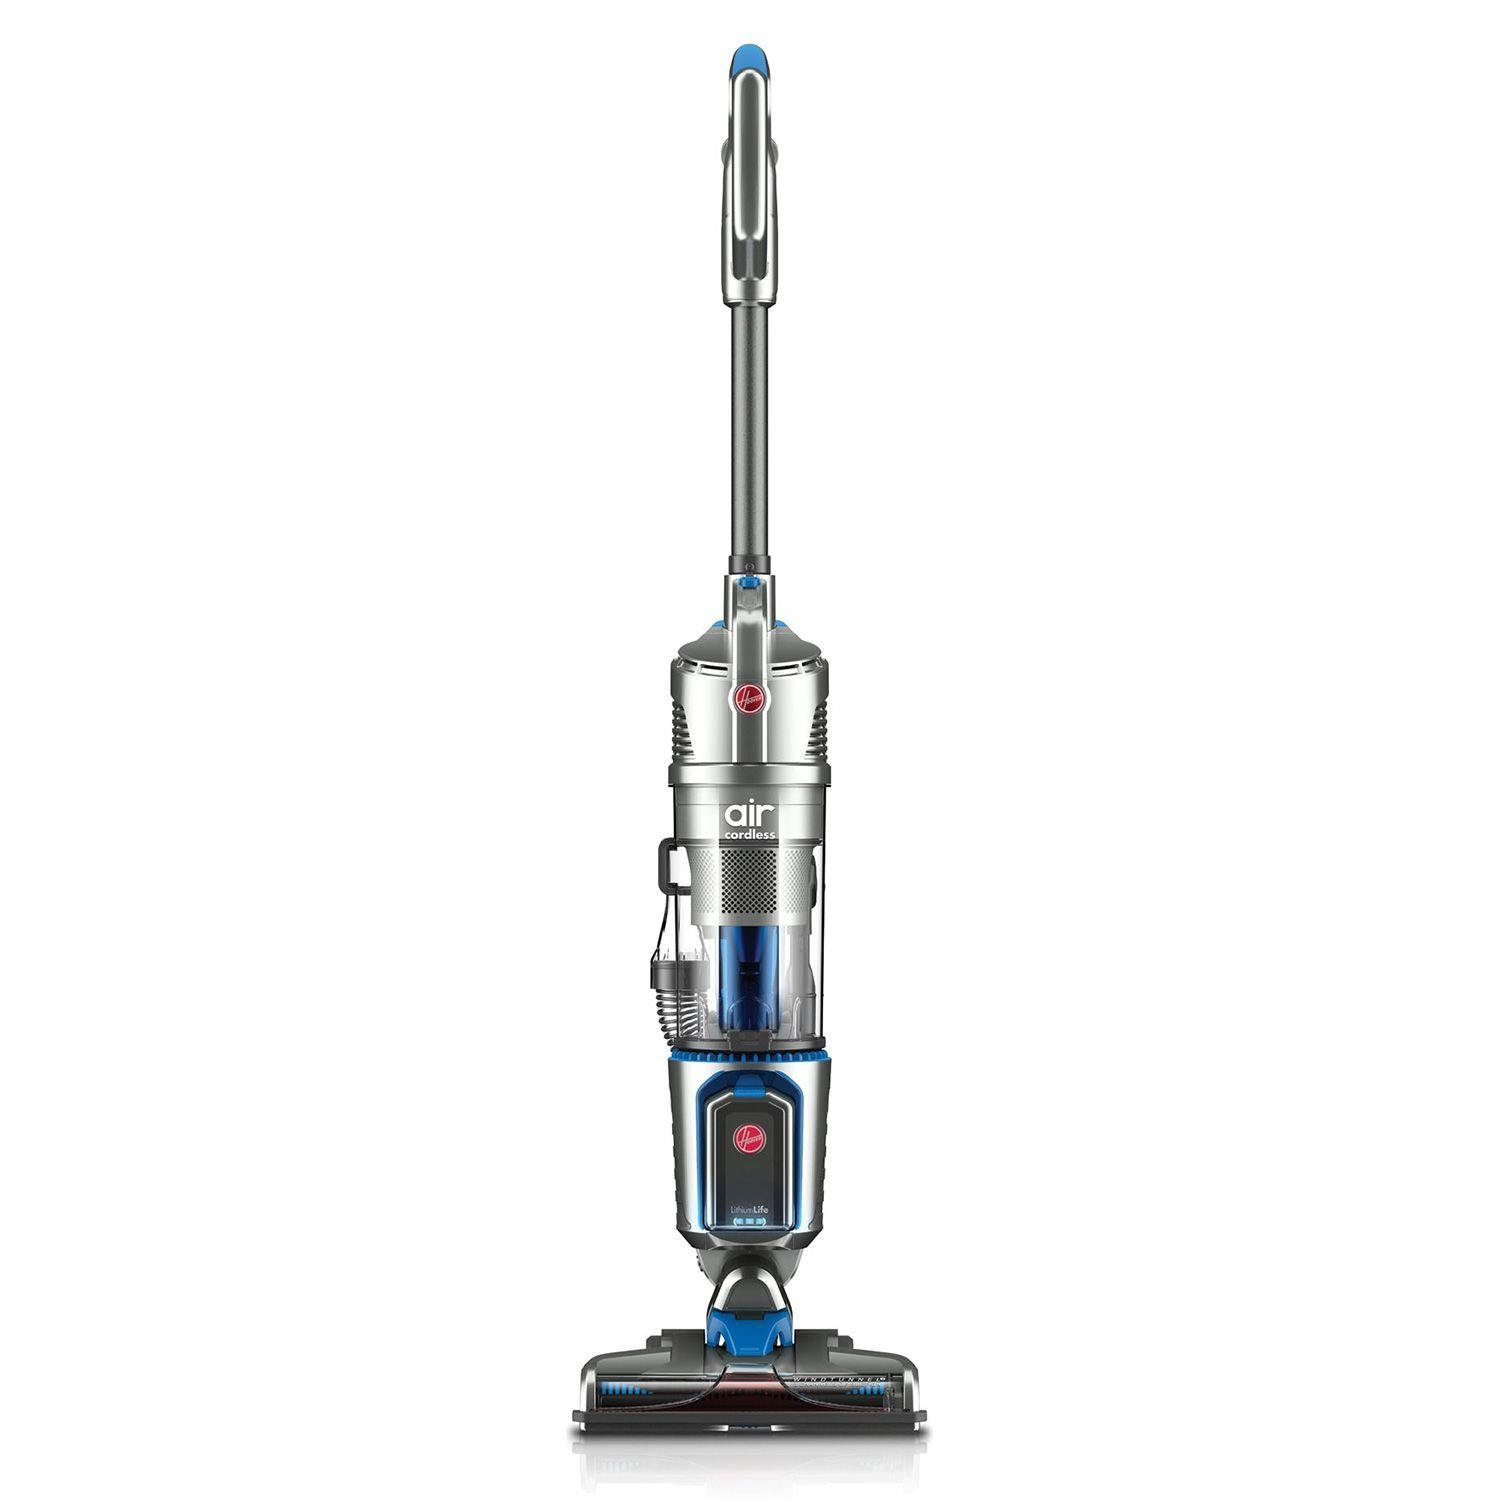 Hoover cordless vacuum reviews Air